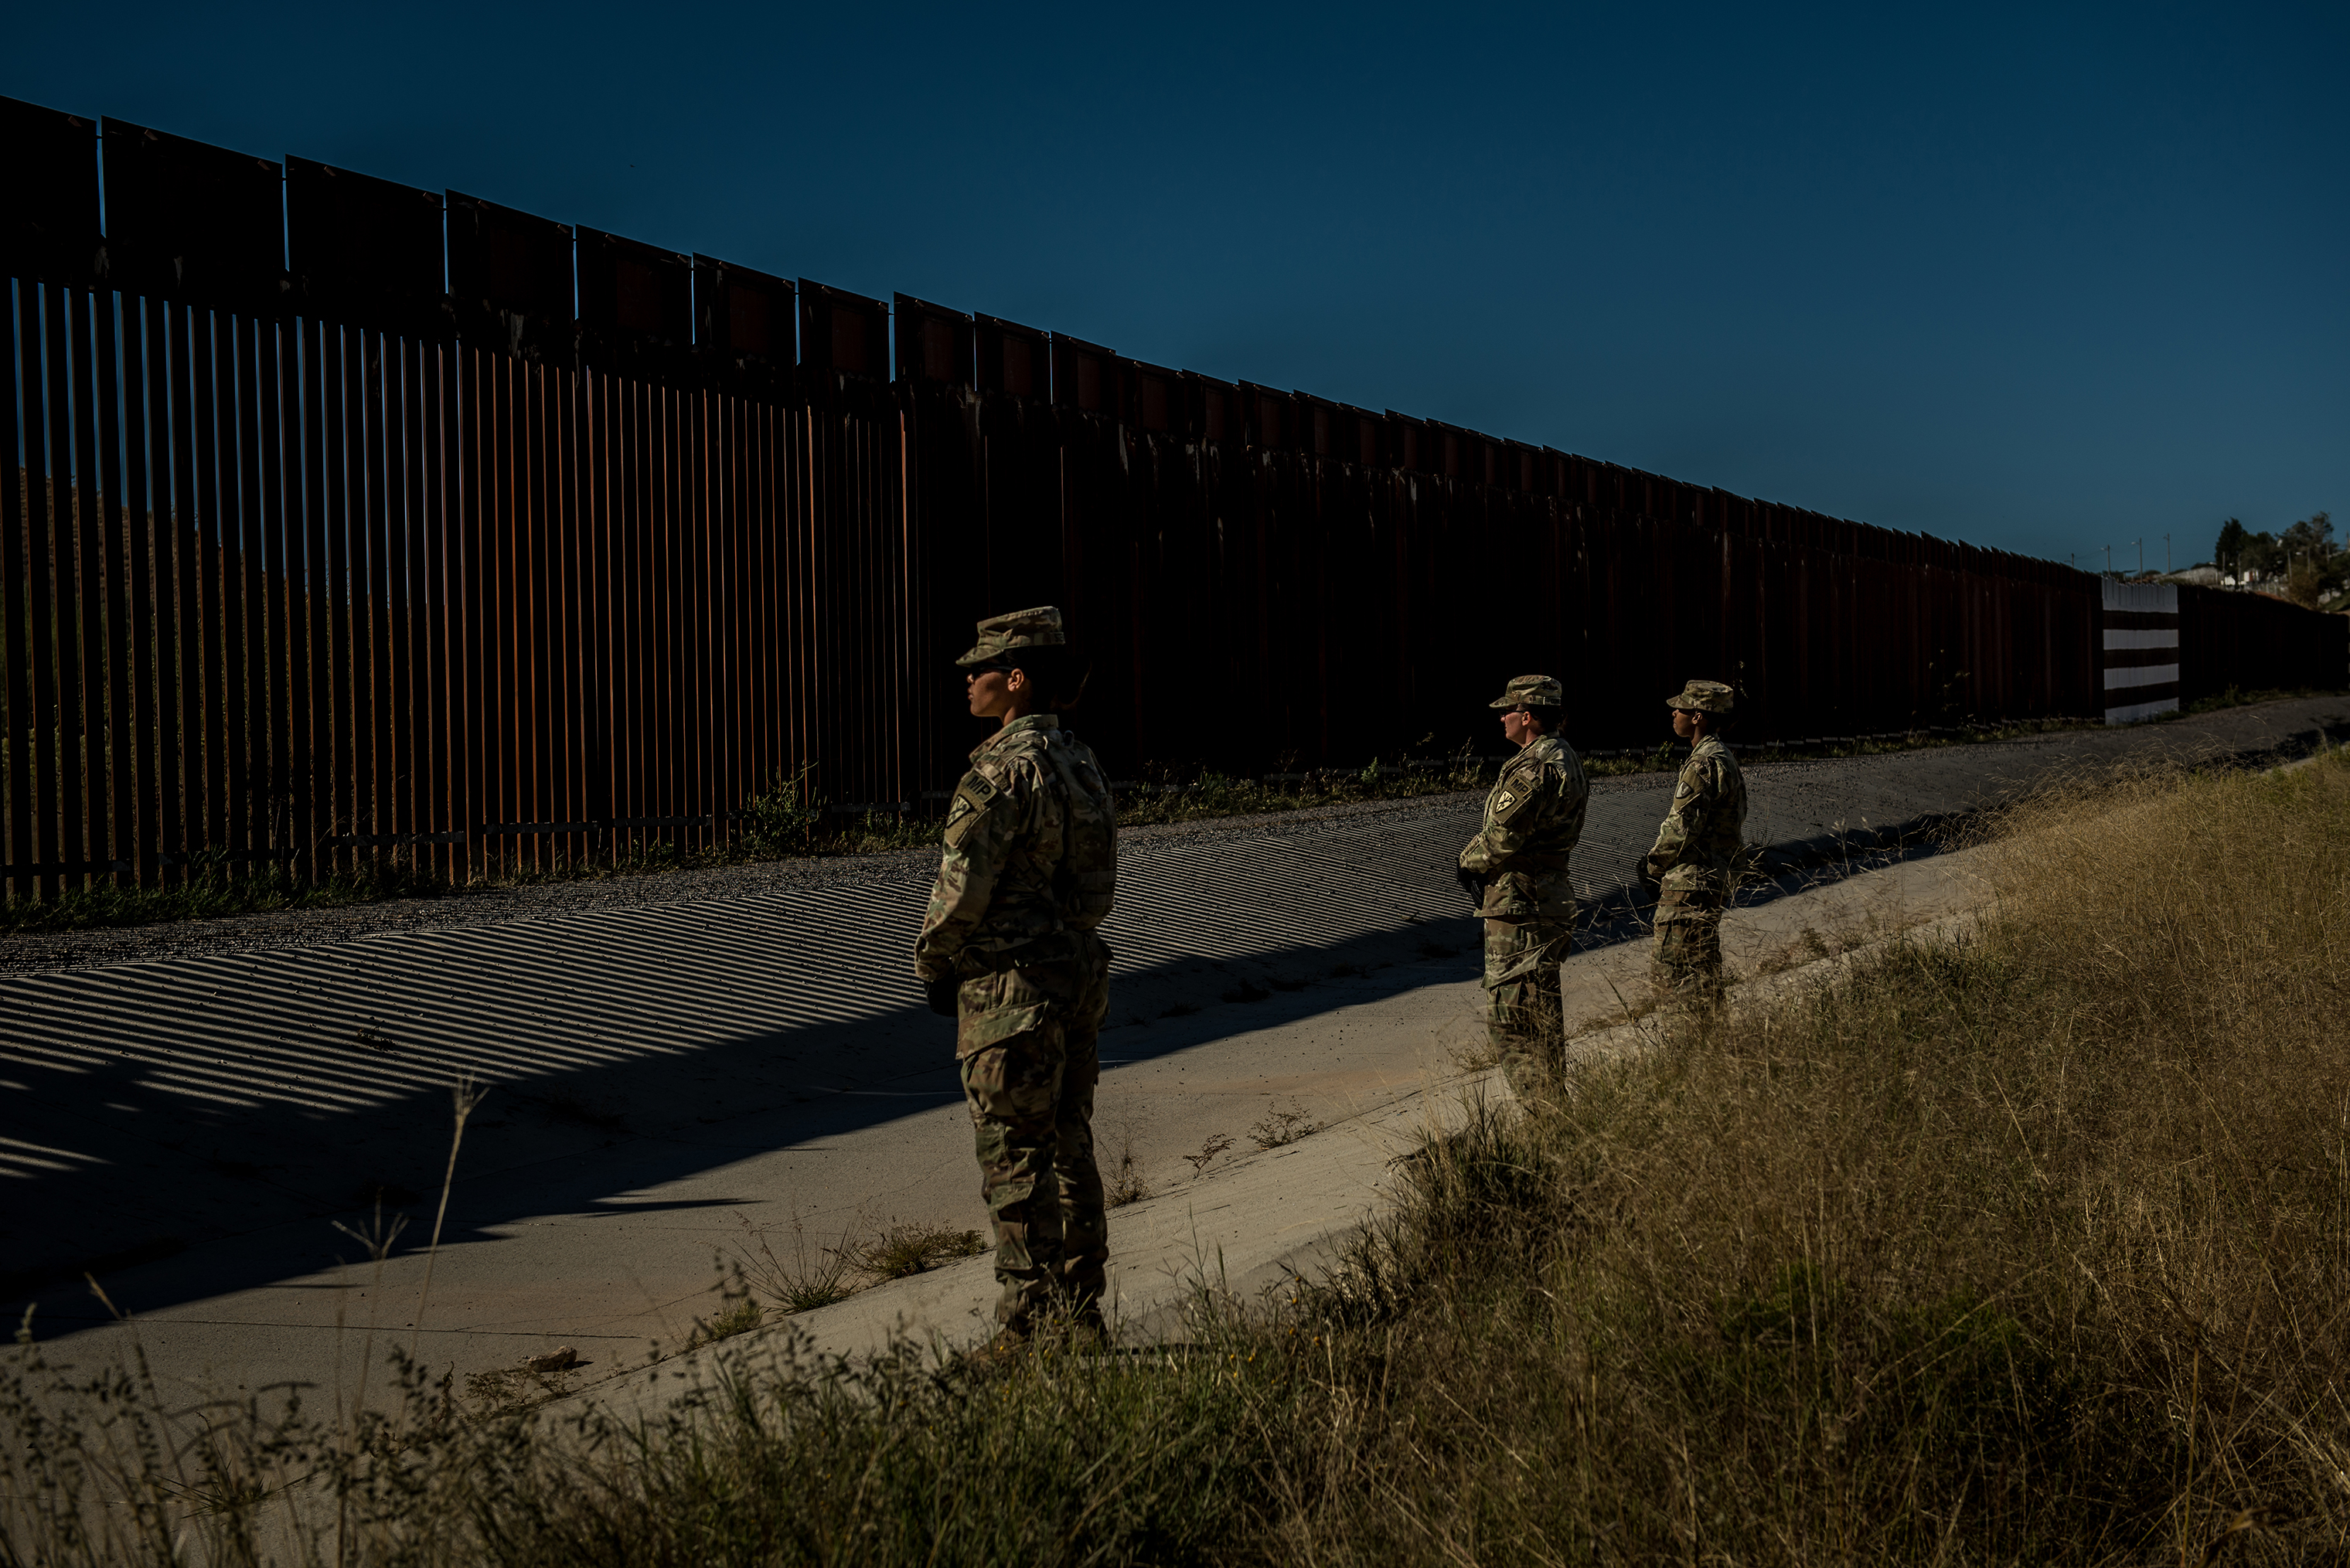 Soldiers of the 104th Engineer Construction Company stand guard as other members of their unit work to heighten security of the border wall.